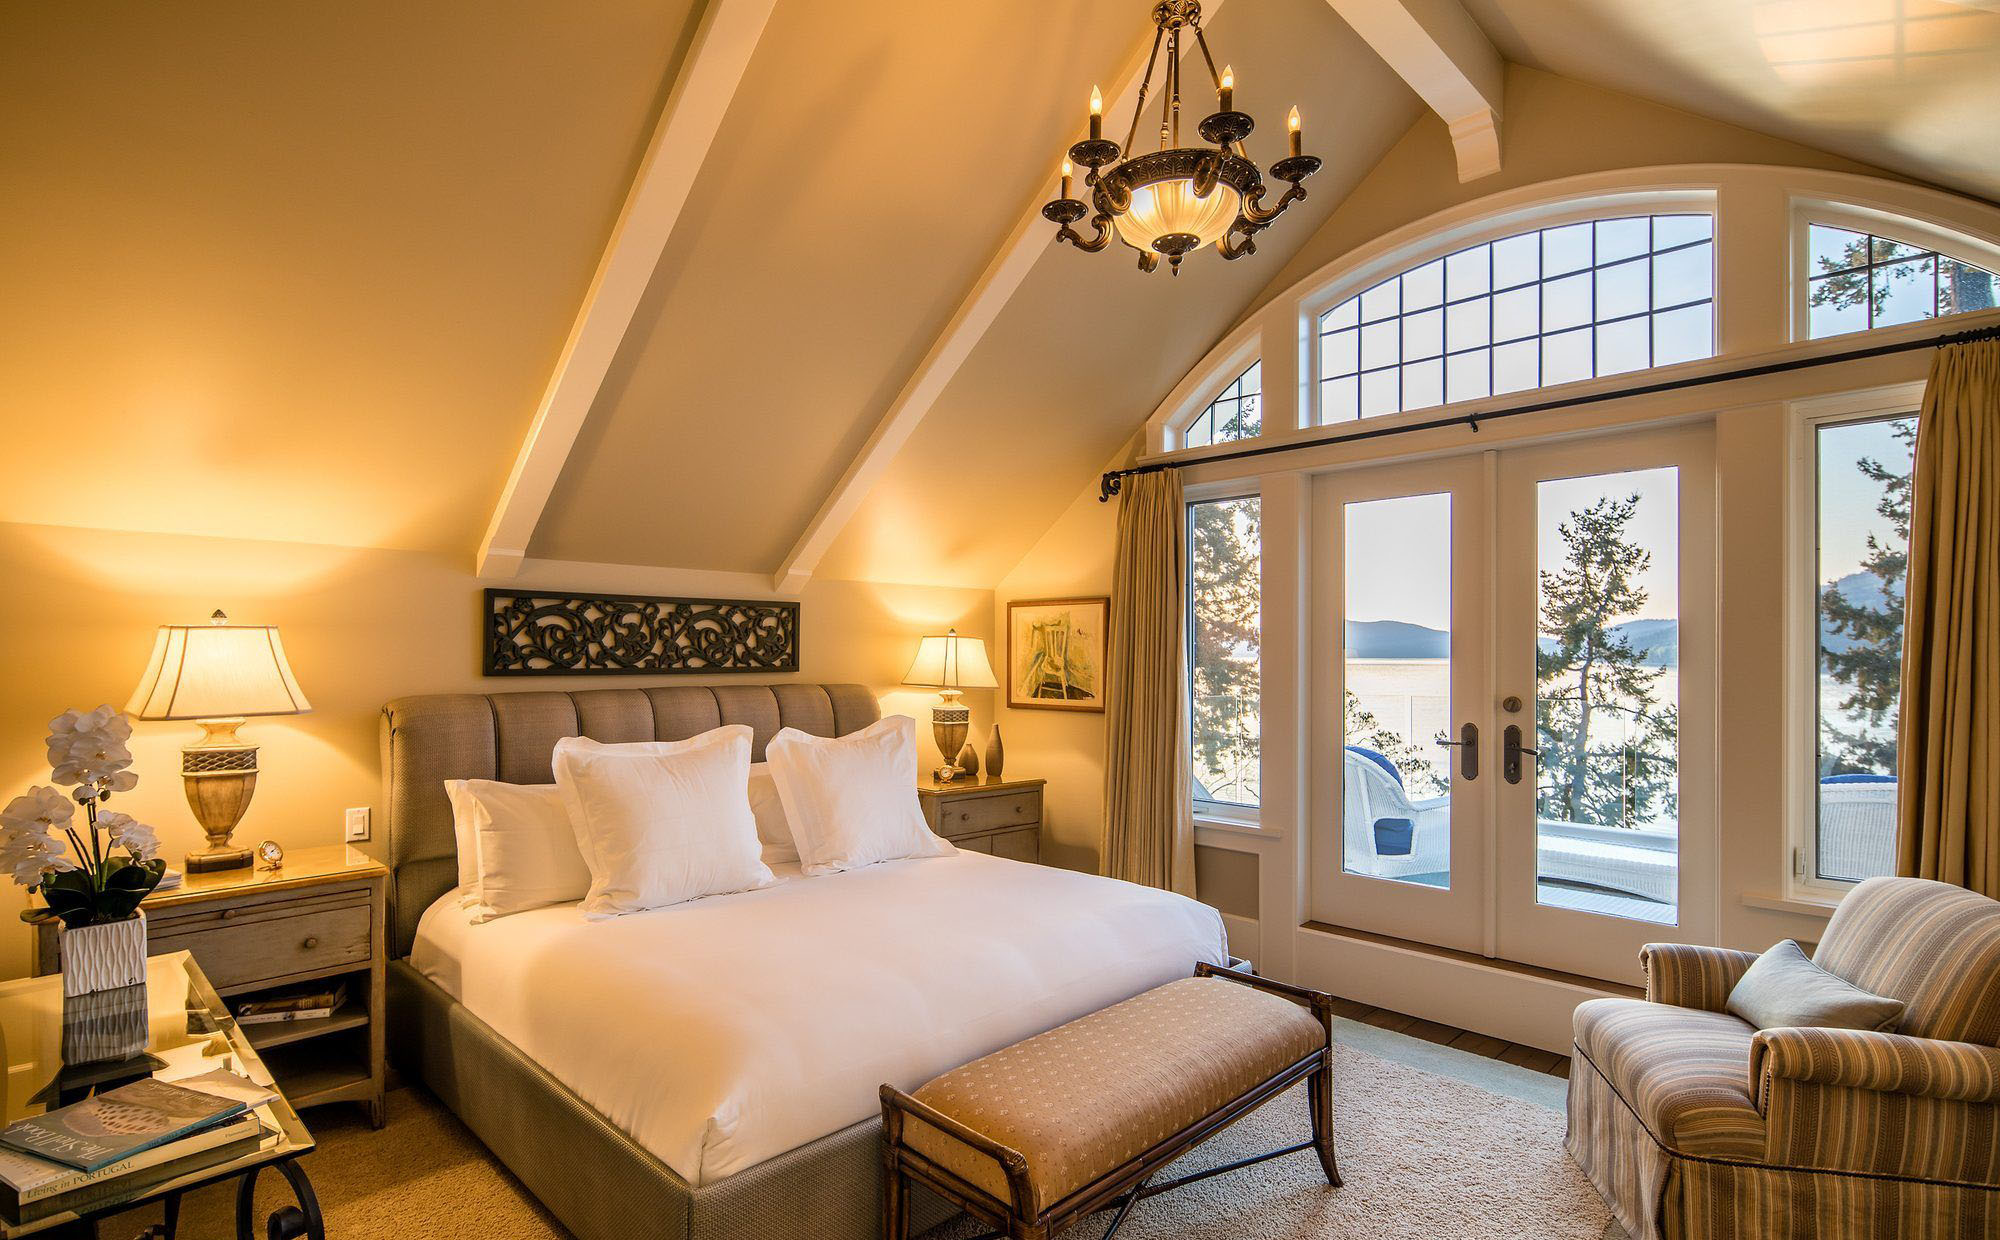 Master bedroom with vaulted ceilings finished with drywall and white beams. huge arched window and transom.